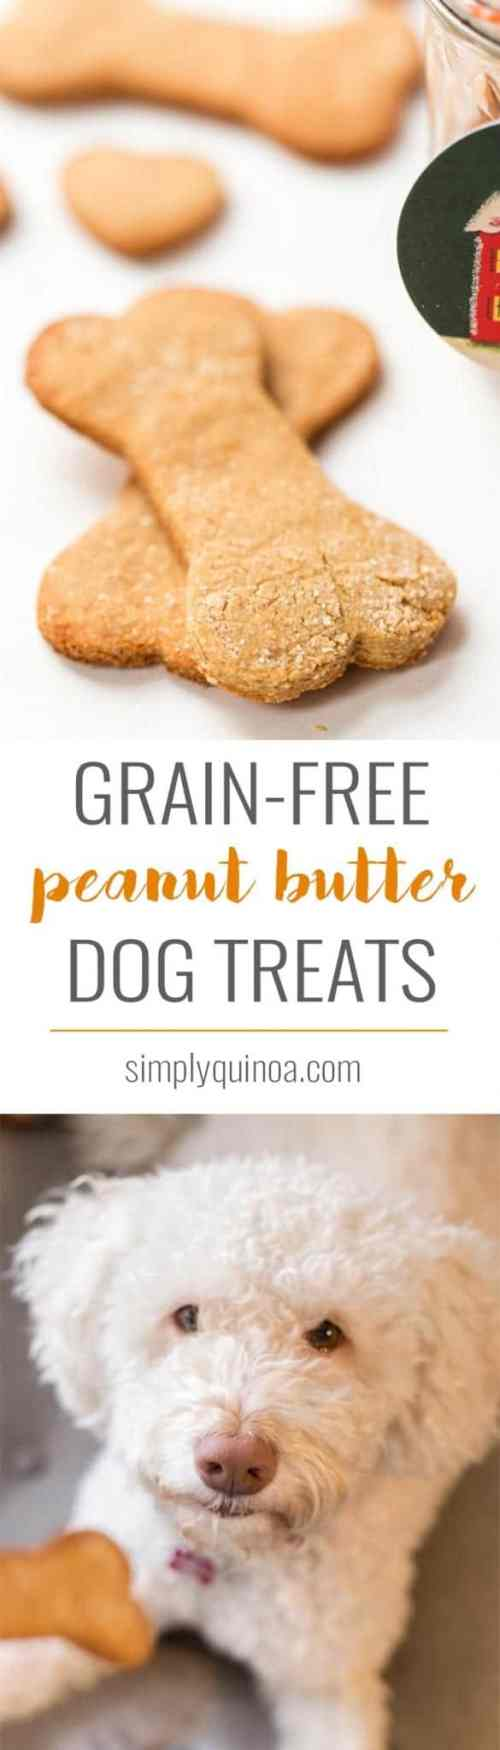 Medium Of Homemade Grain Free Dog Treats